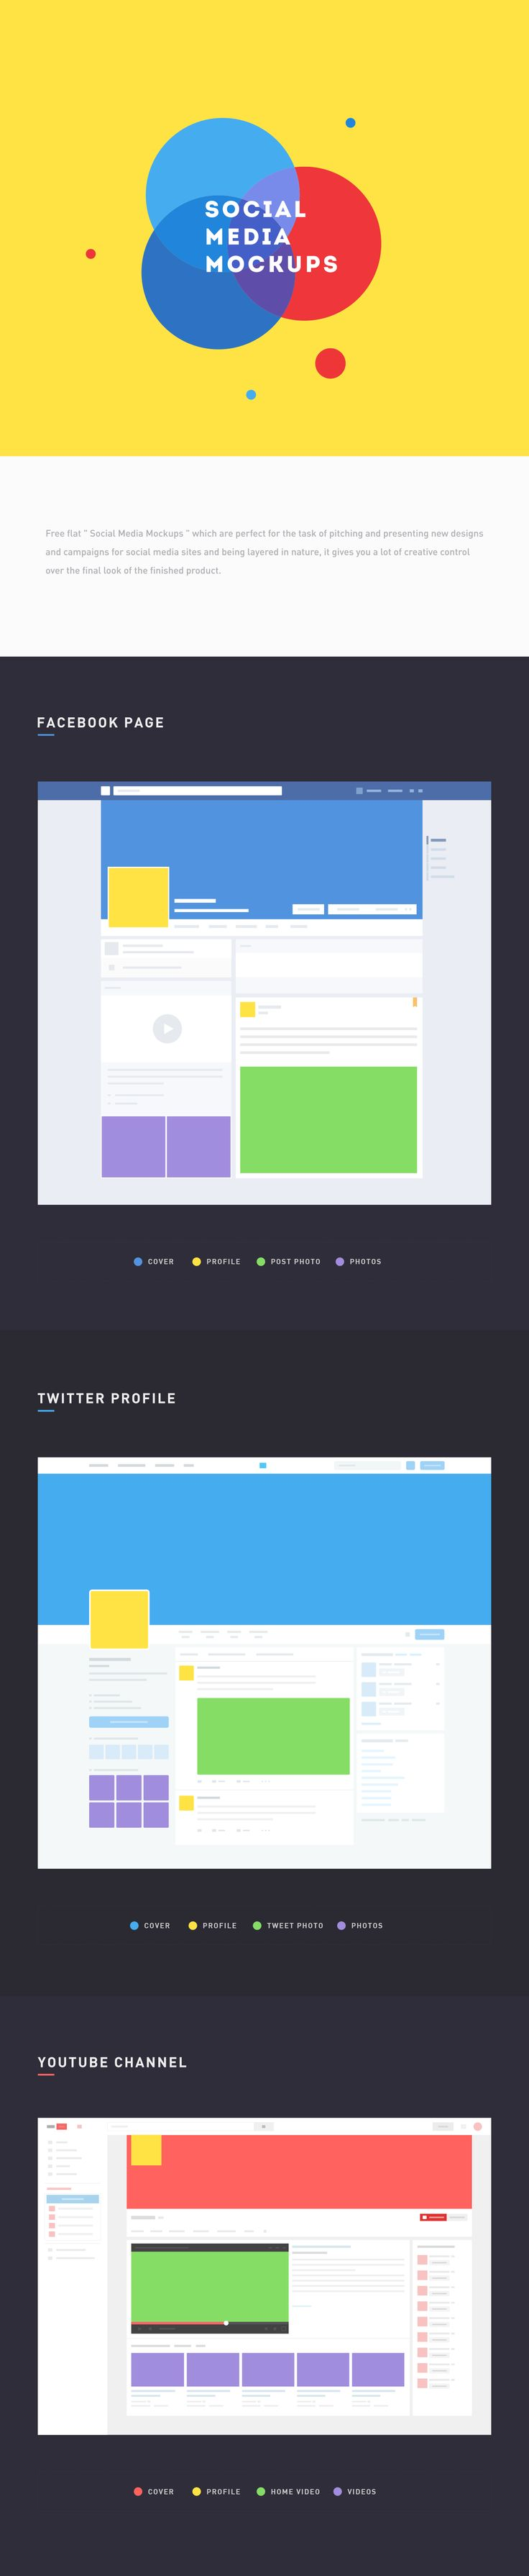 "free flat "" social media mockups "" which are perfect for the task of pitching and presenting new designs and campaigns for social media sites and being layered in nature, it gives you a lot of creative control over the final look of the finished product. …"